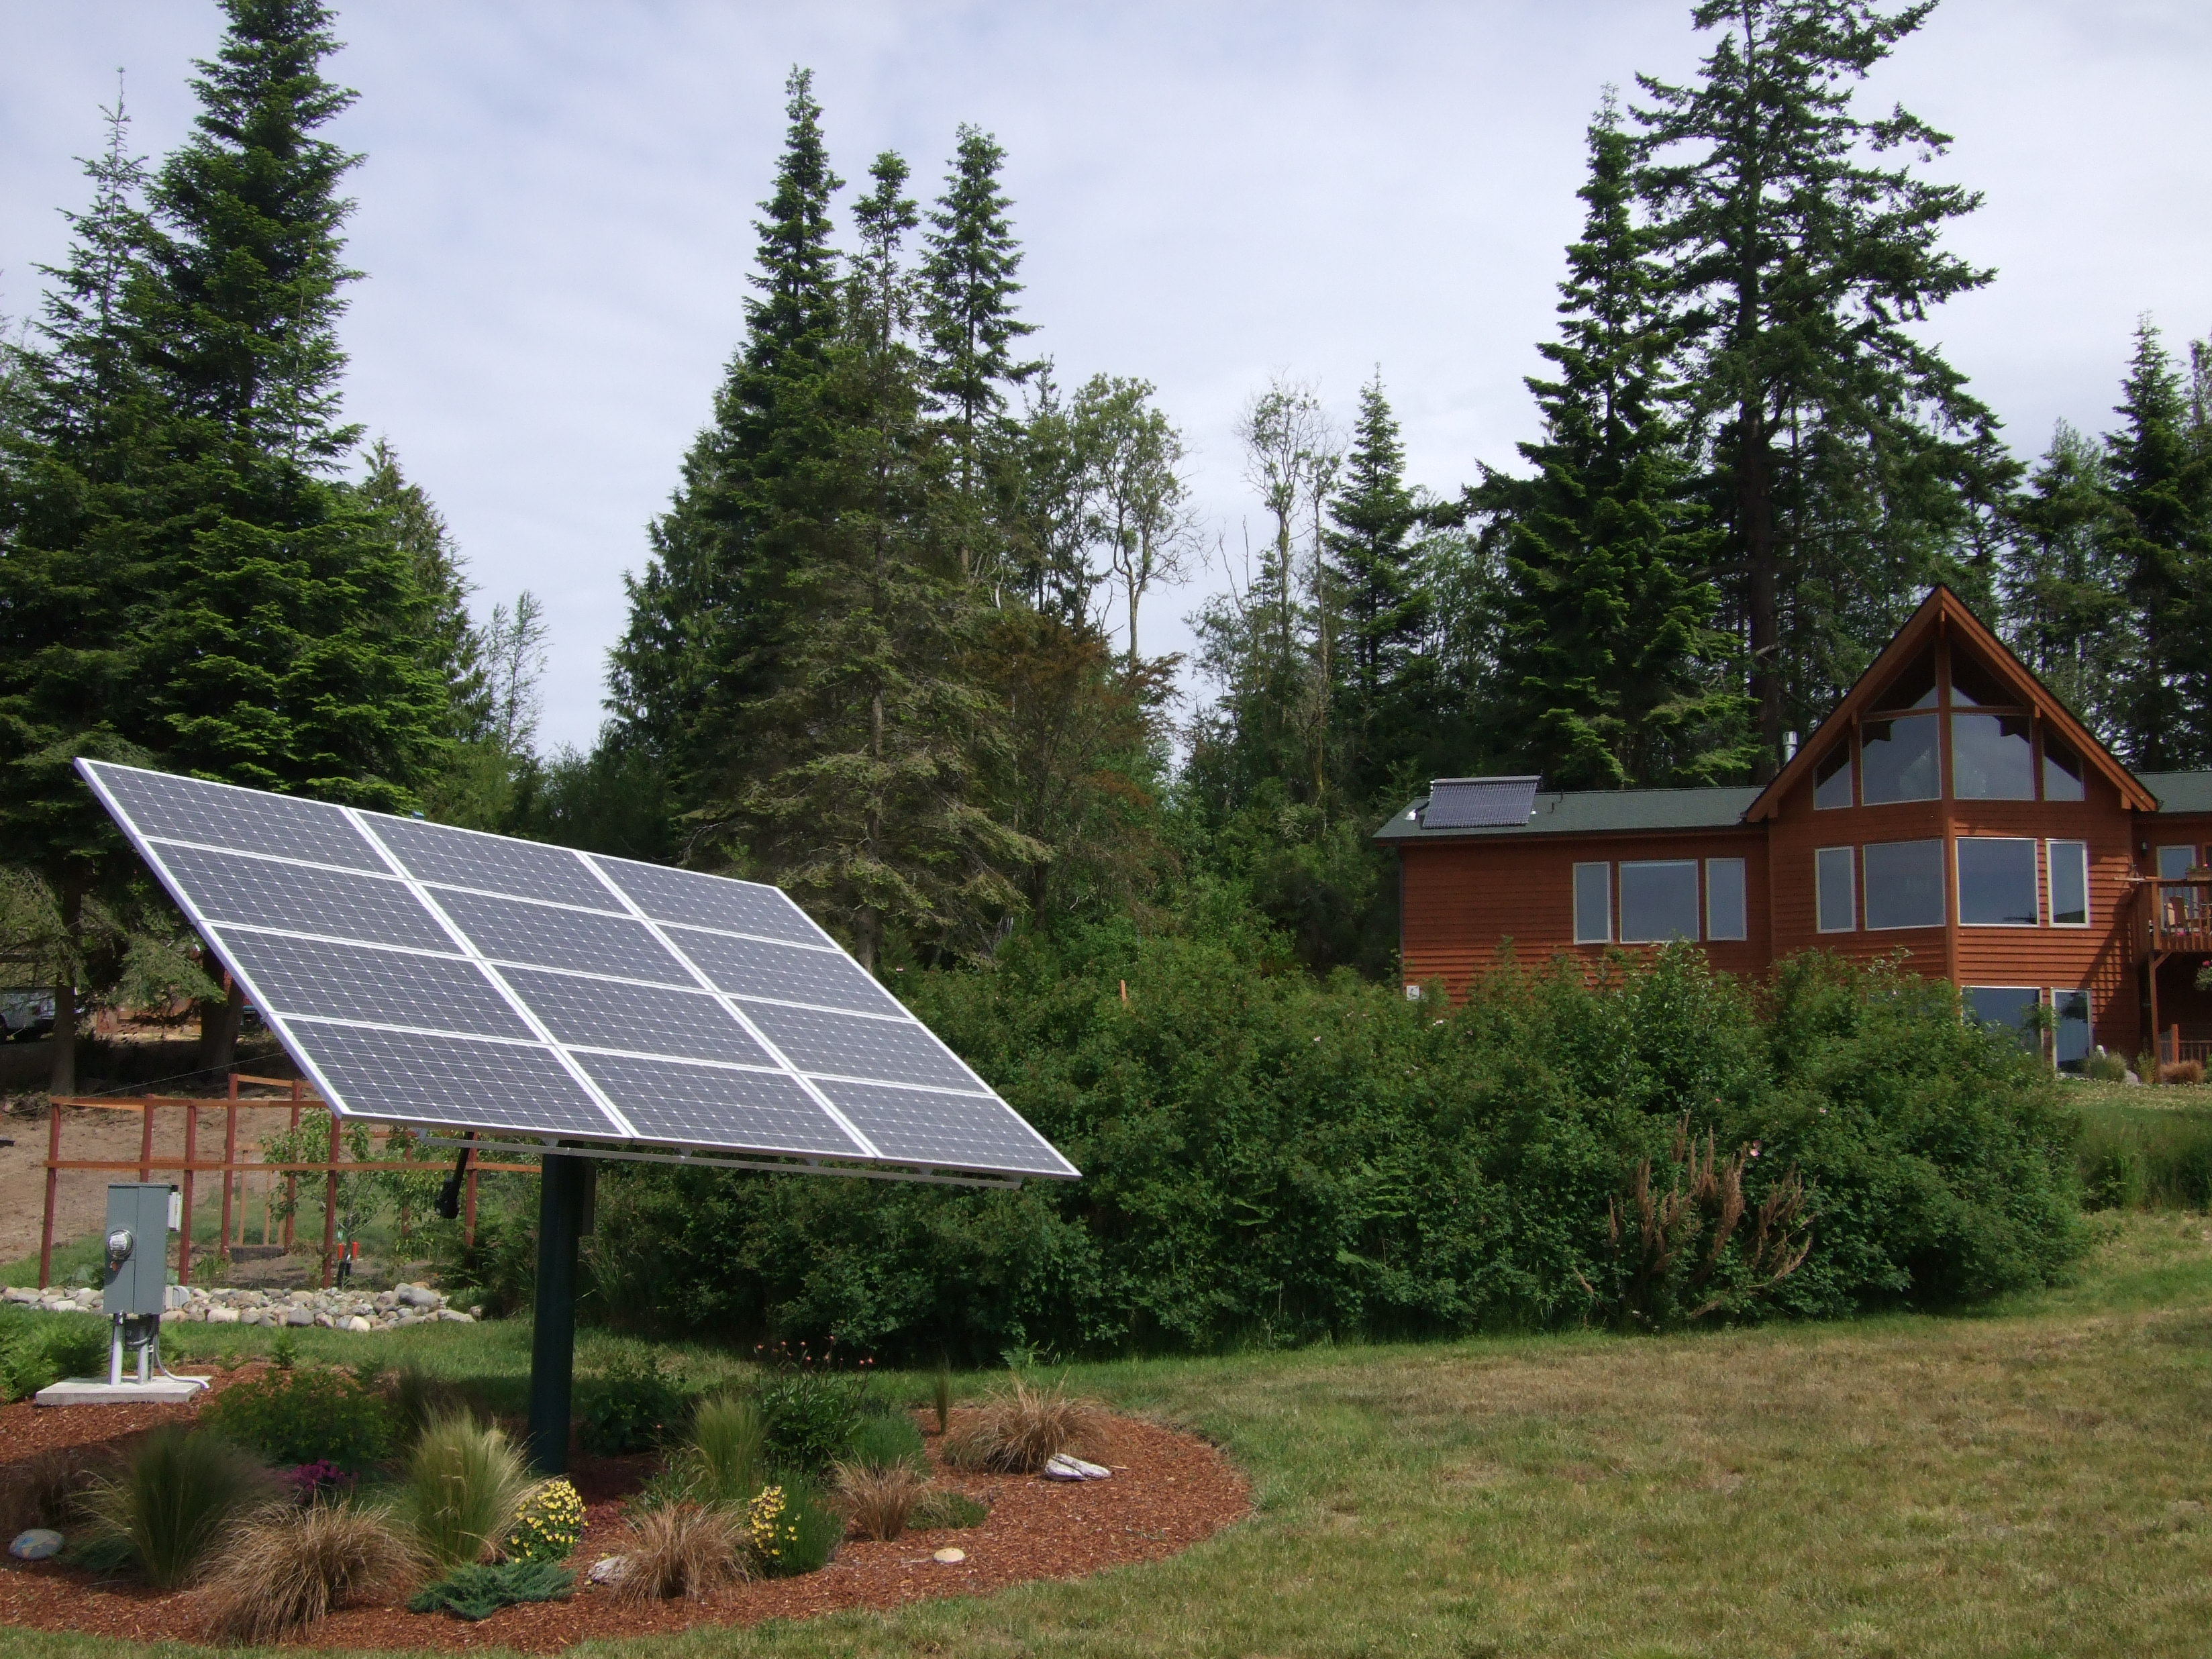 Lanham Residence, Solar Thermal, 2.1 KW, Port Angeles, 2008